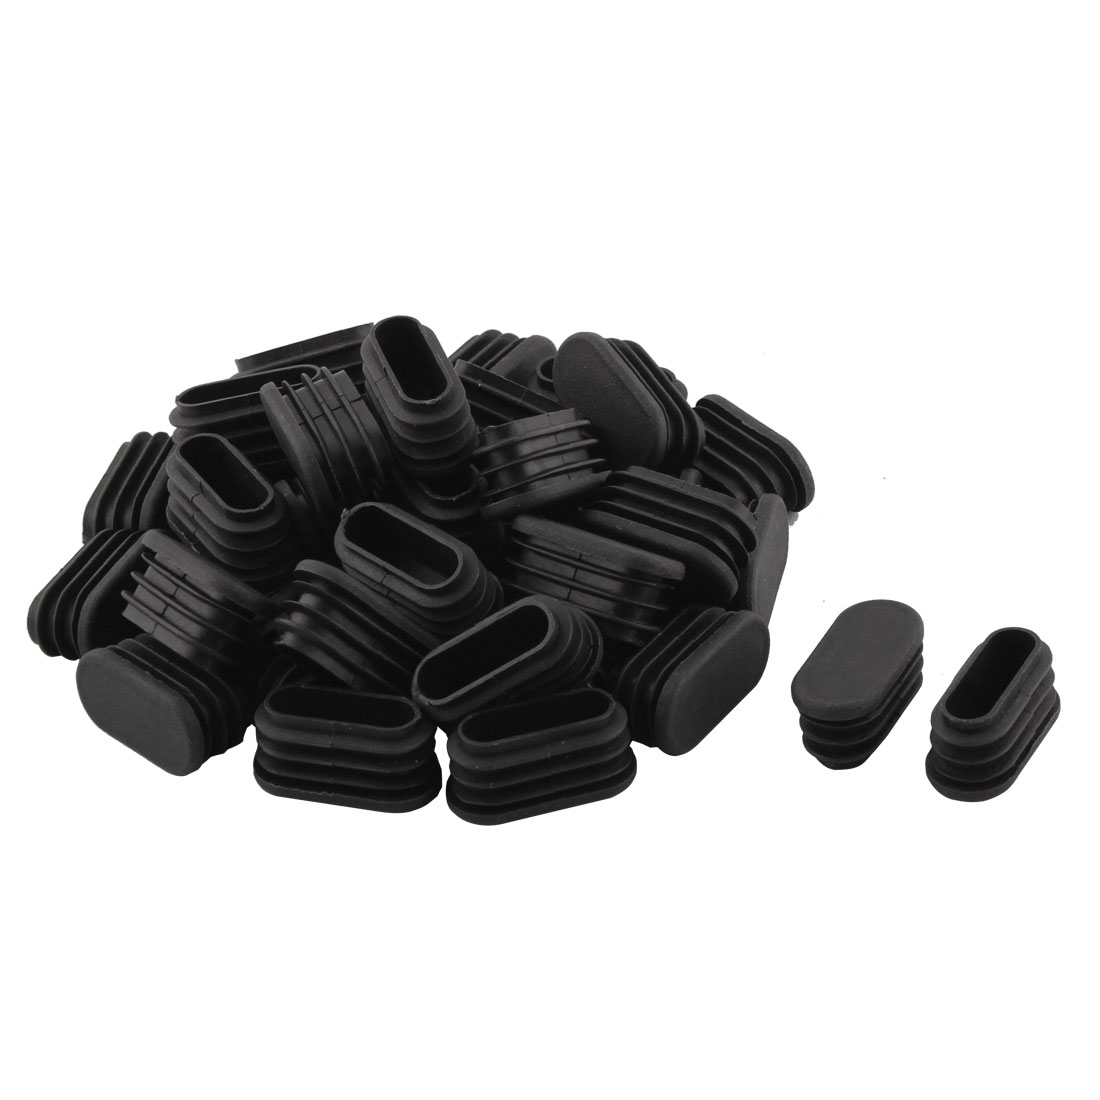 Household Plastic Rectangular Shaped Chair Leg Tube Pipe Insert Black 1.6 x 3.4cm 40 PCS